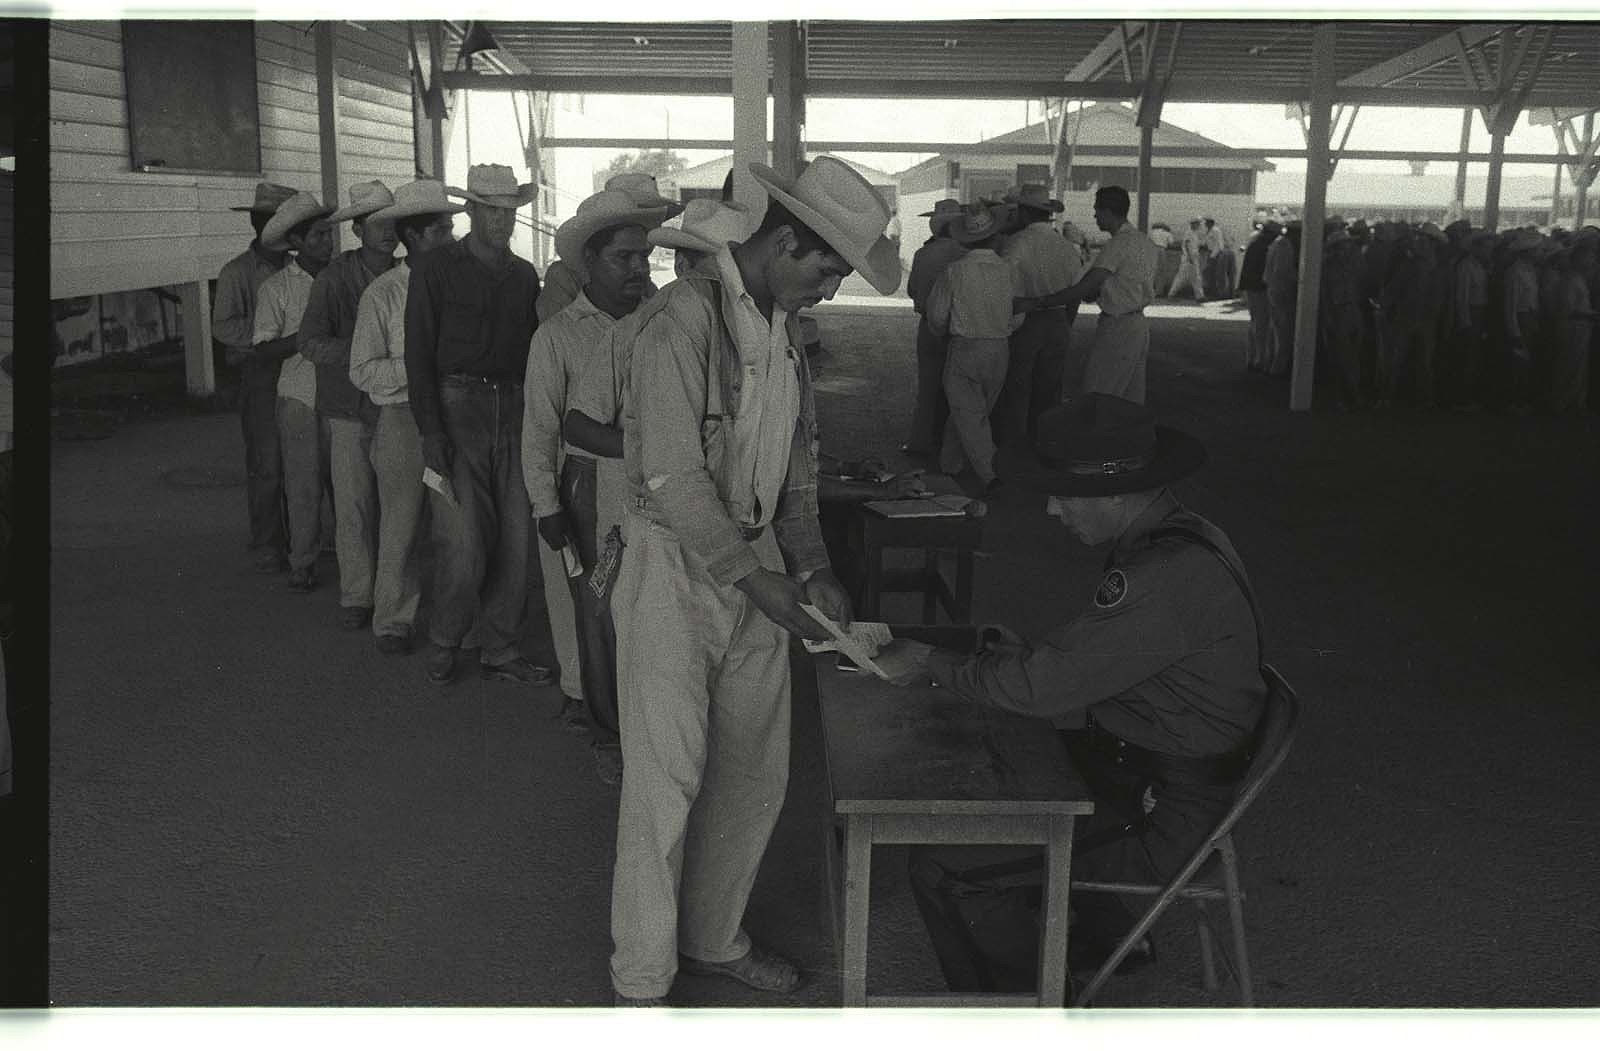 An official reviews the documents of a bracero while others wait in line to be processed at the Hidalgo Processing Center, Texas